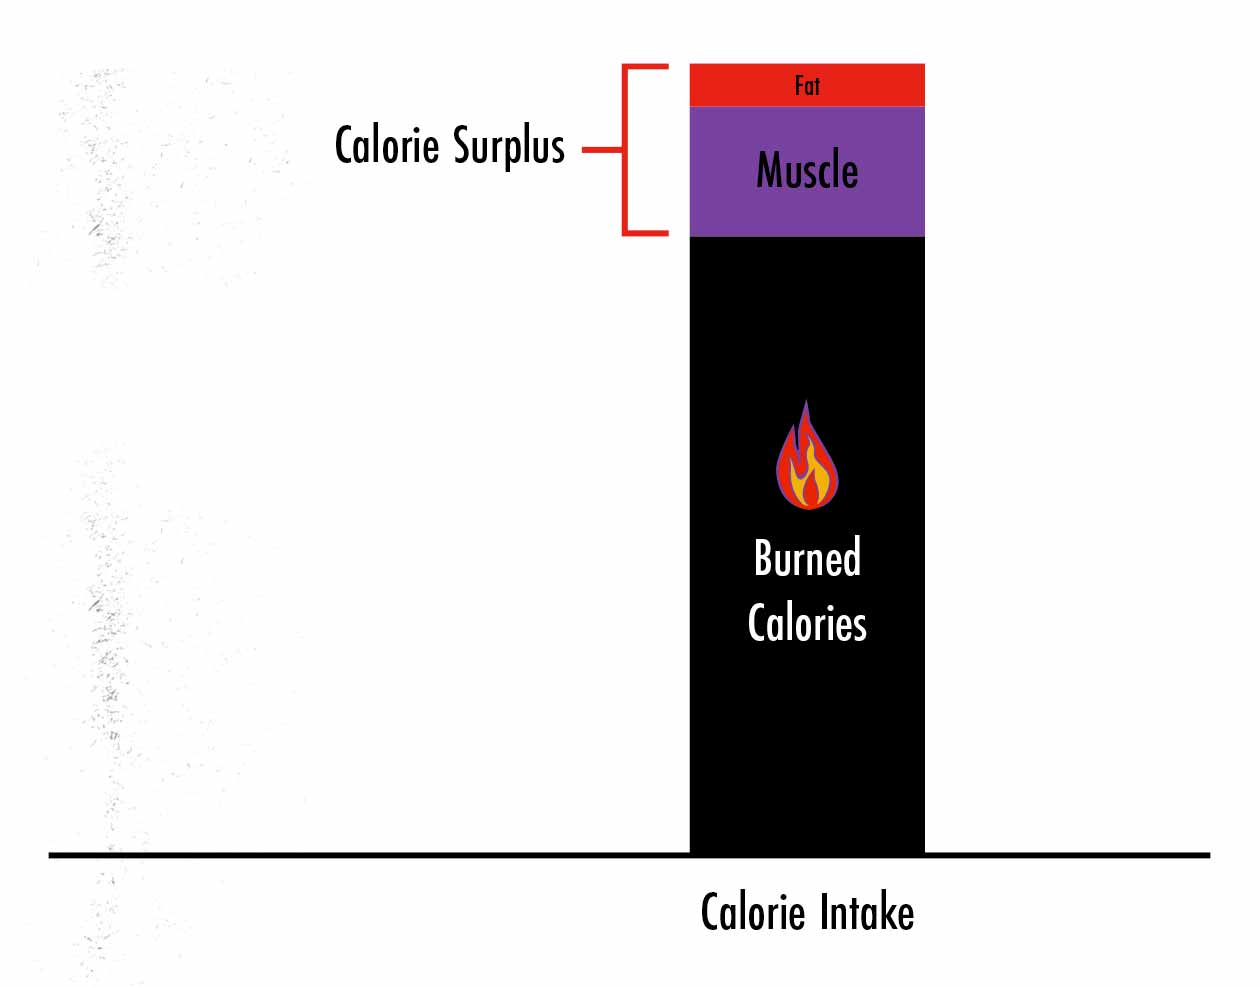 Graph showing that if we can gain muscle faster, we'll have fewer surplus calories, and thus we'll gain less fat while bulking.